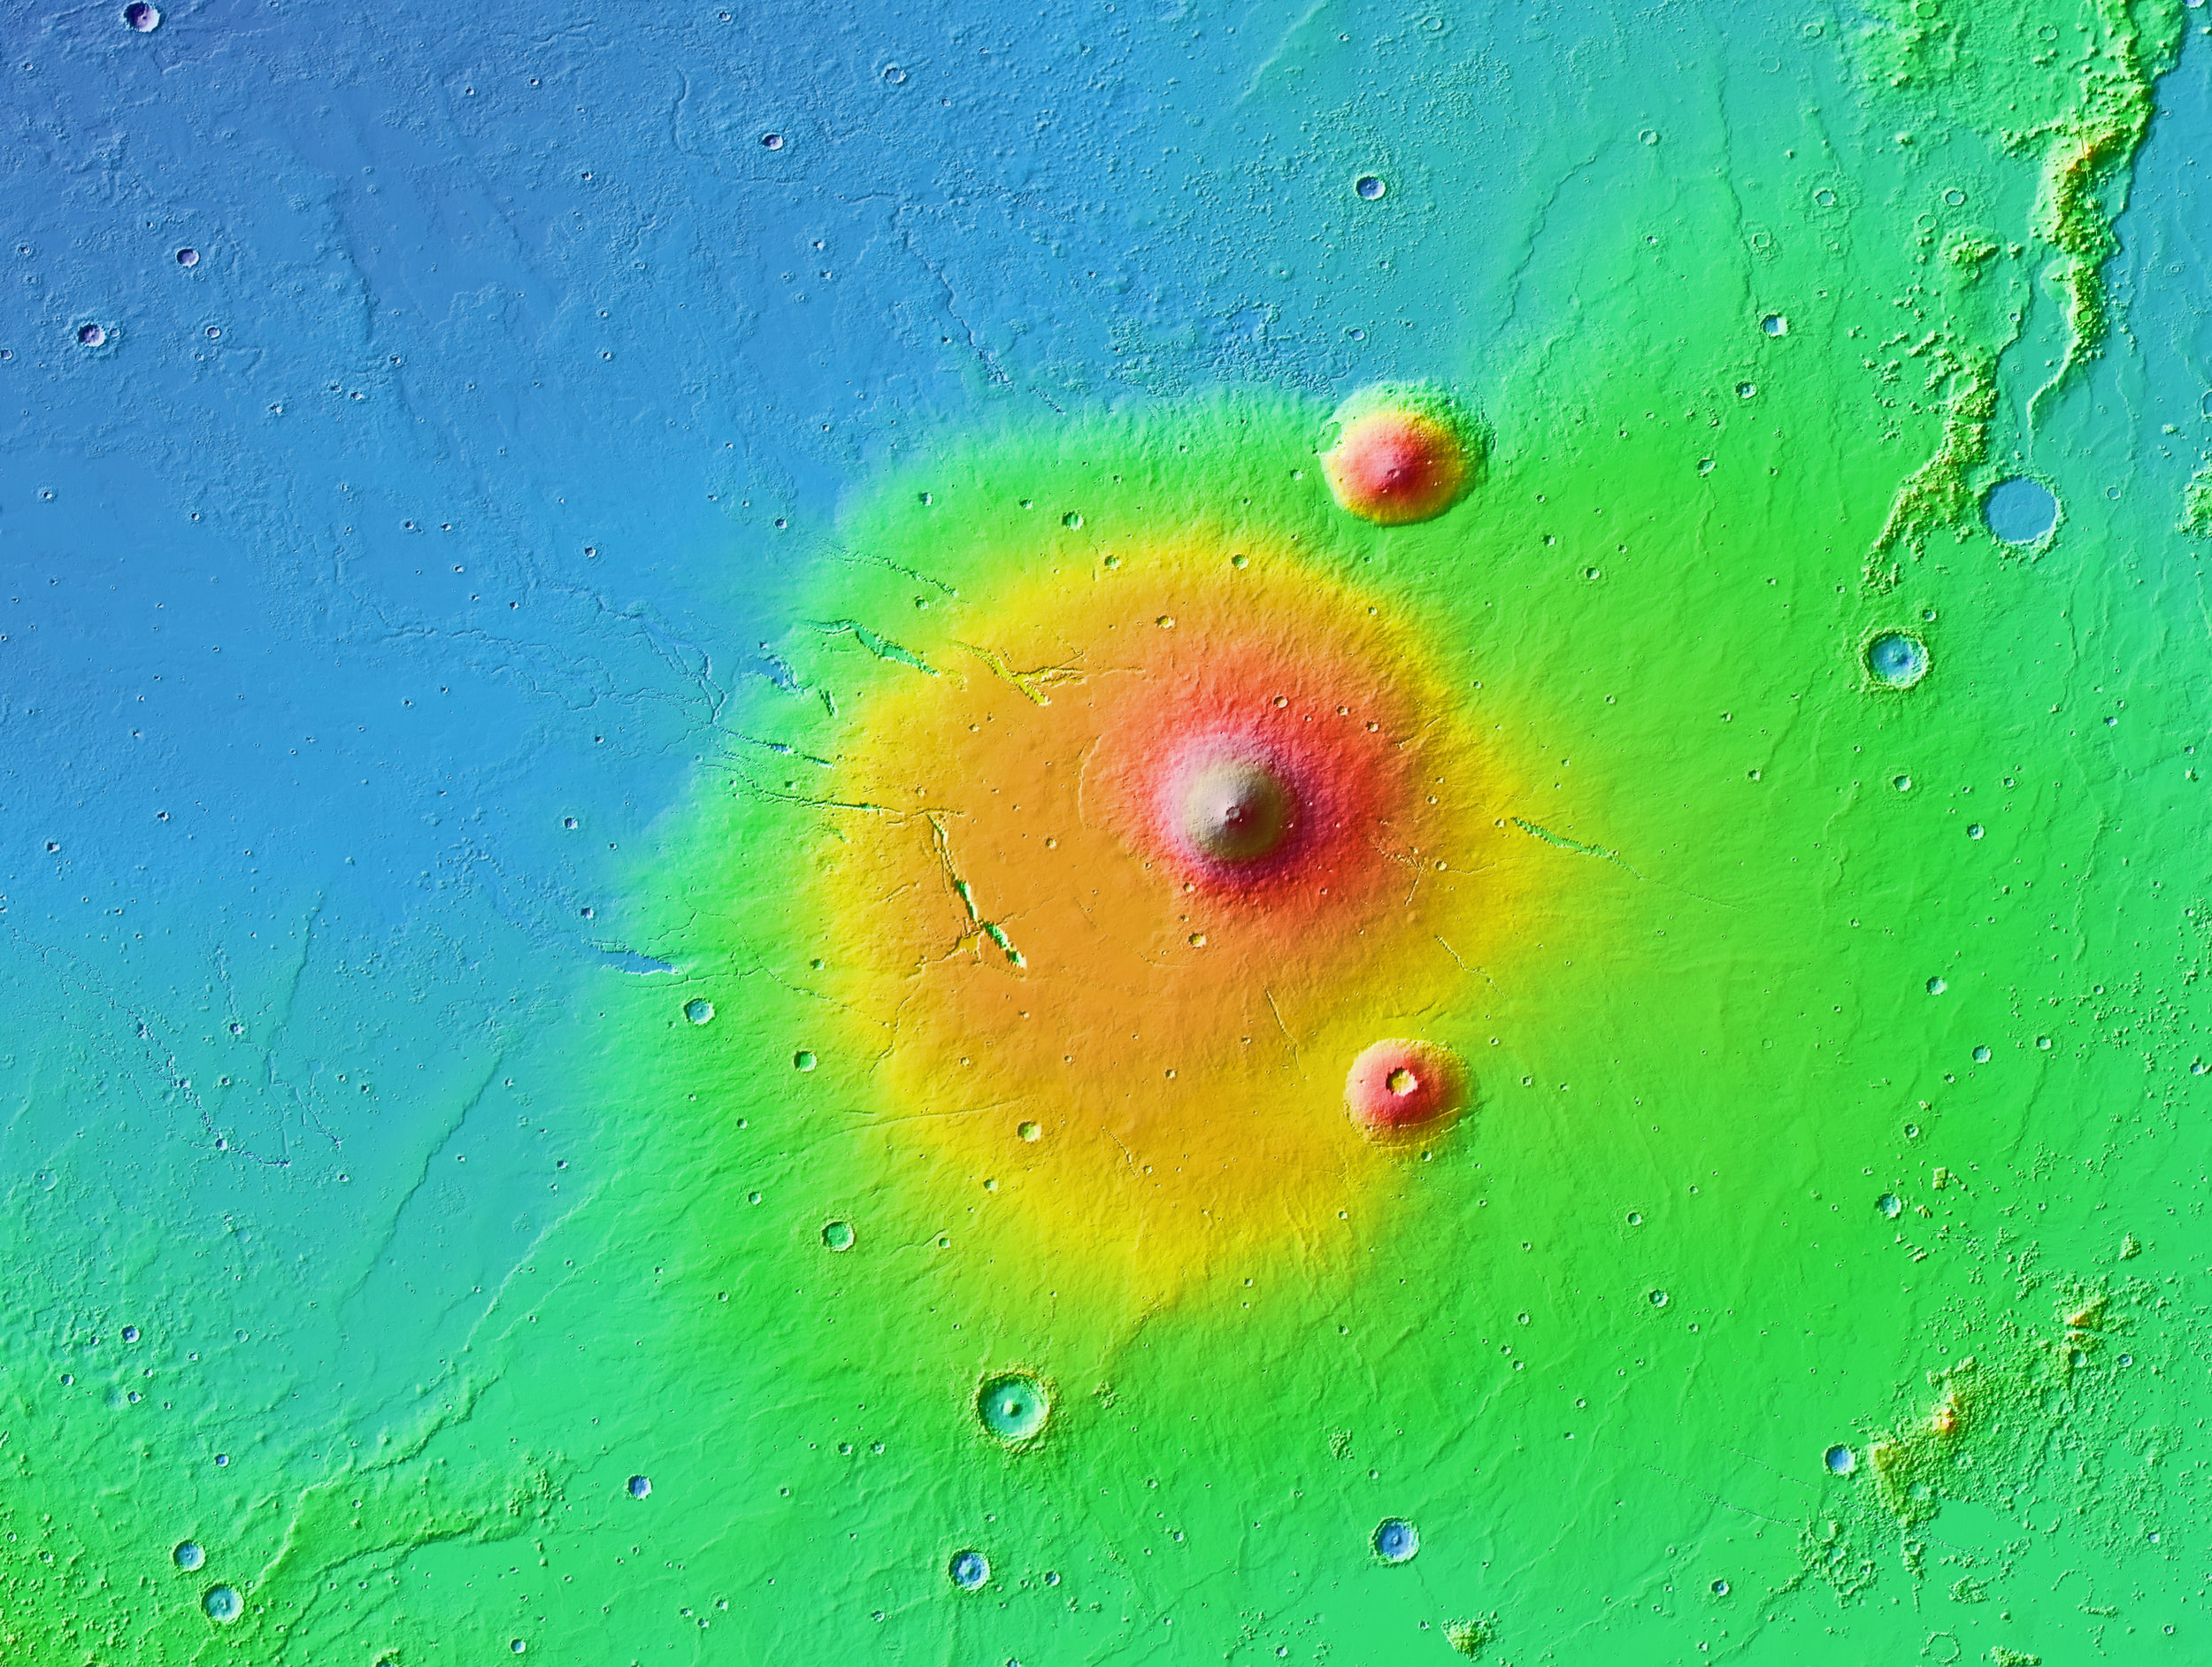 A colorized topographic map of the volcanic province Elysium,with its surroundings, from the Mars Orbiter Laser Altimeter (MOLA) instrument of the Mars Global Surveyor spacecraft. Image credit:NASA / JPL-Caltech / Arizona State University.